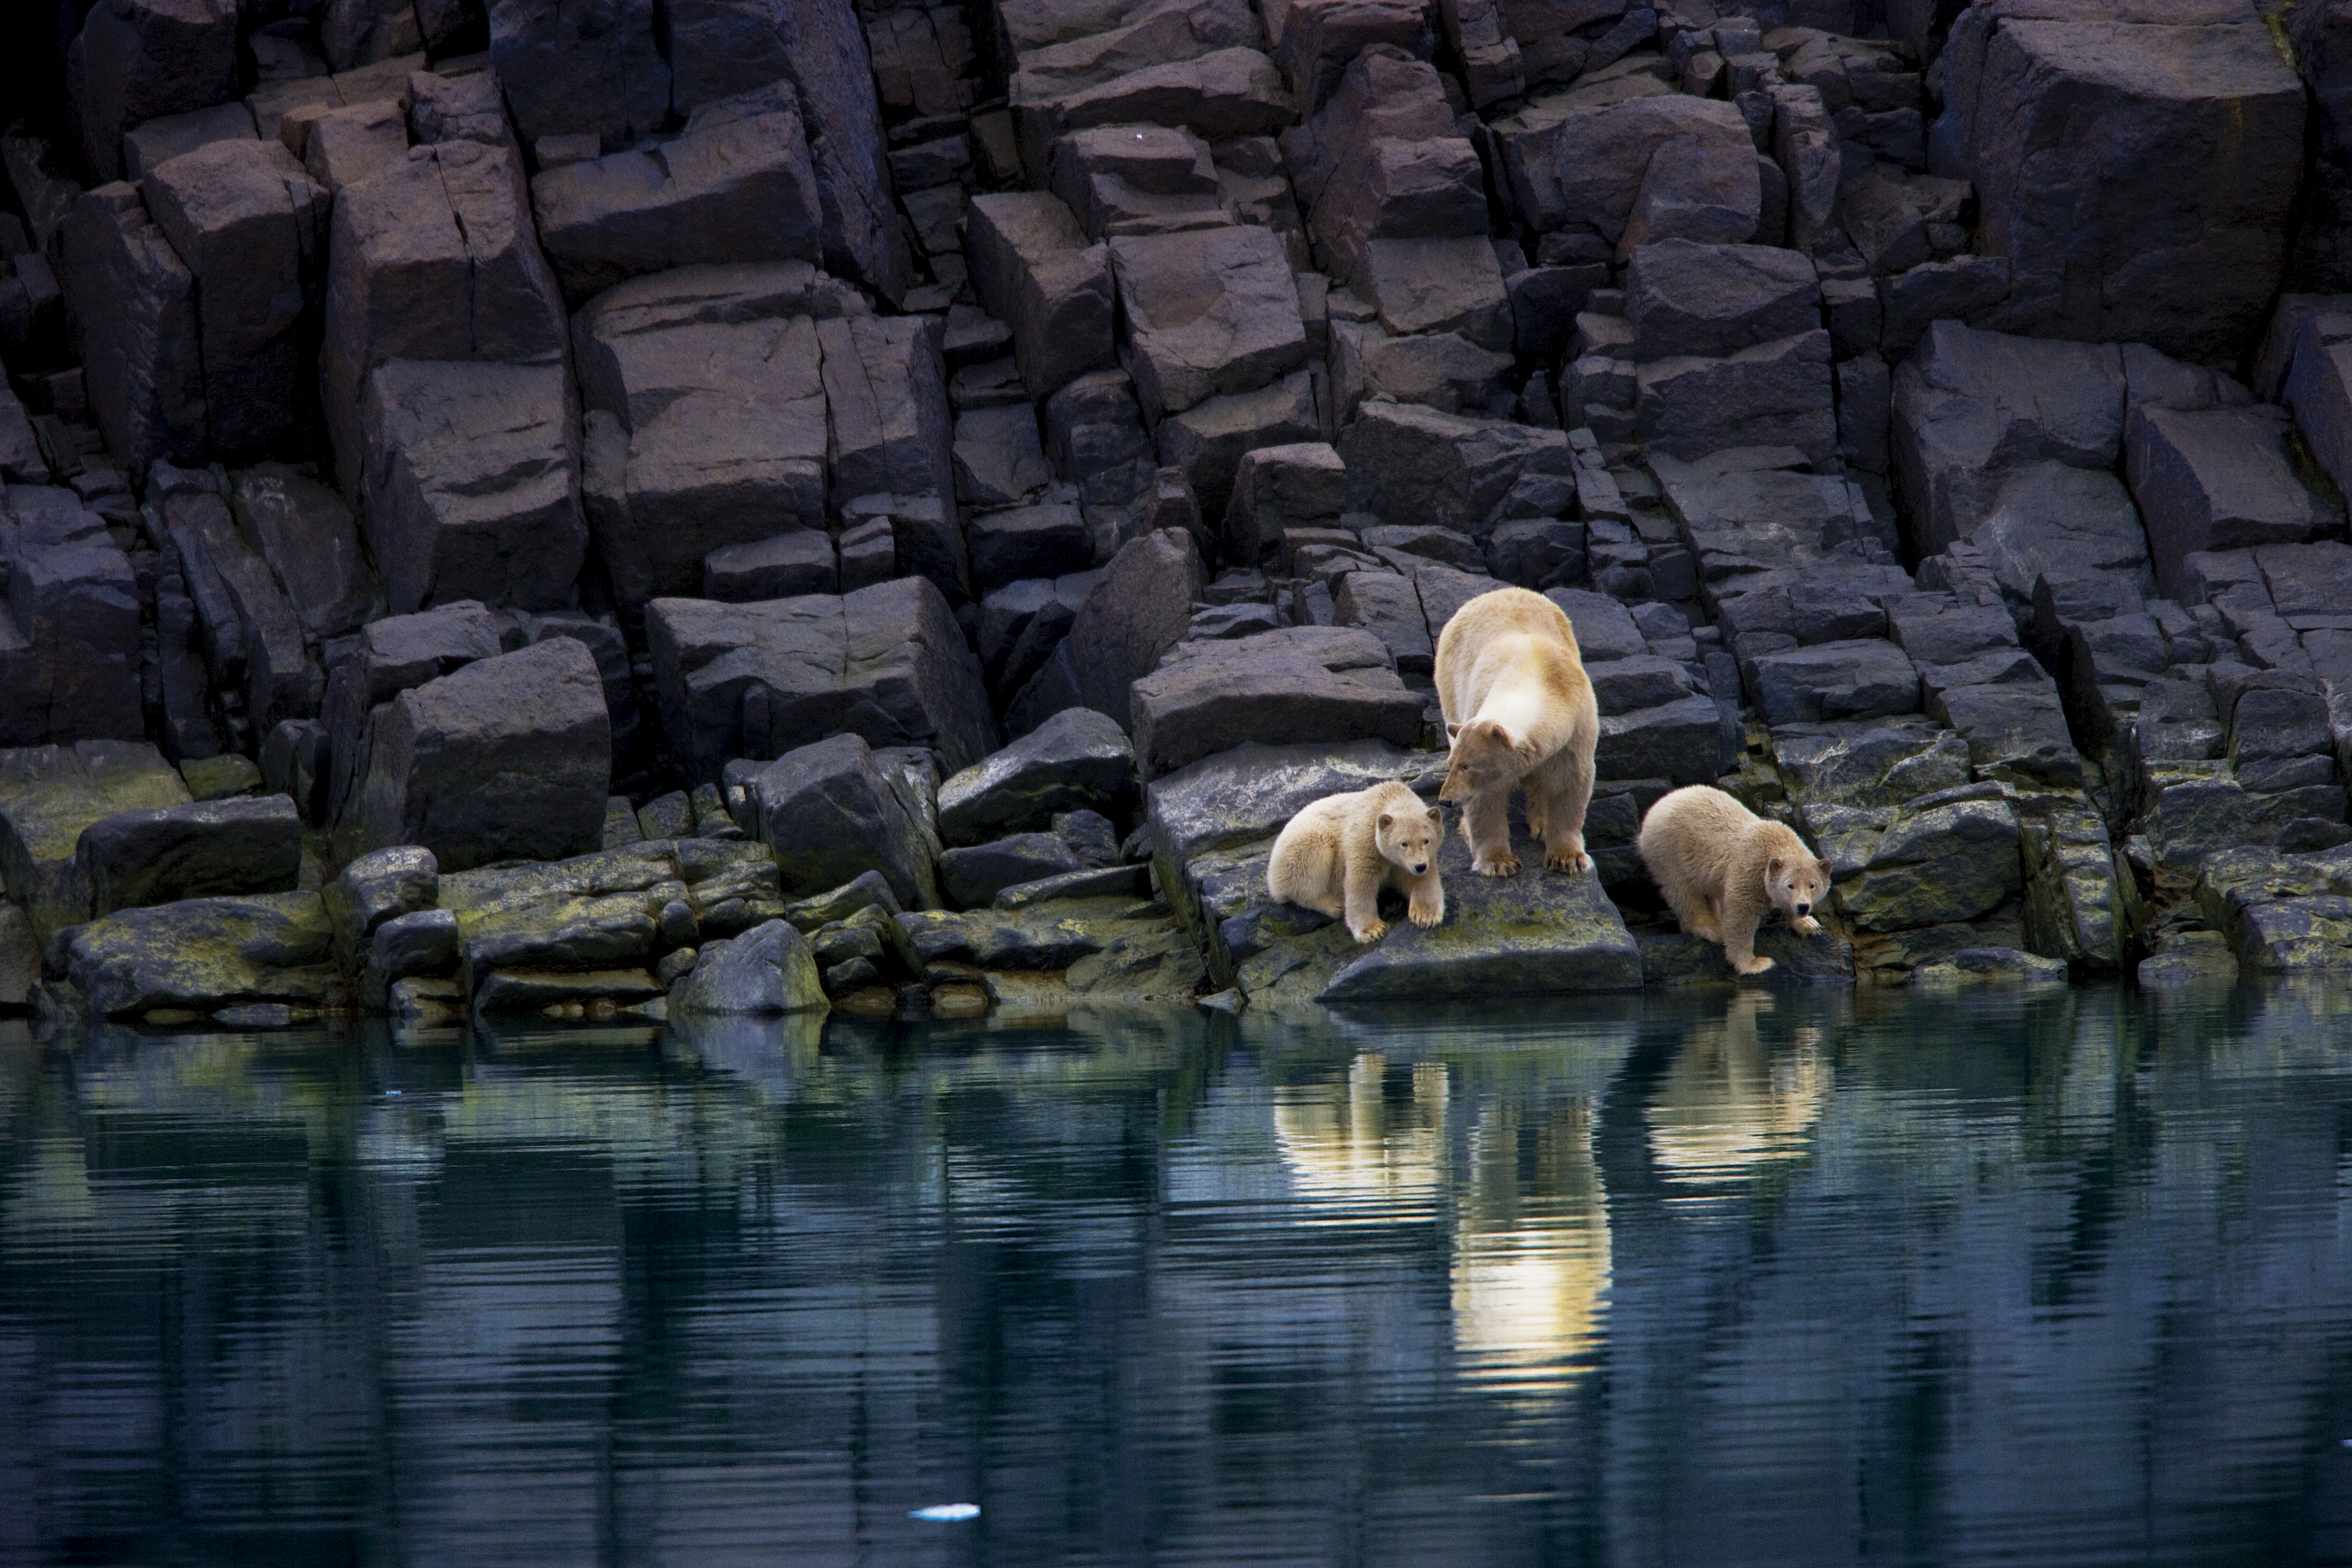 Without ice, a mother bear and cubs are stranded on a rocky shoreline.